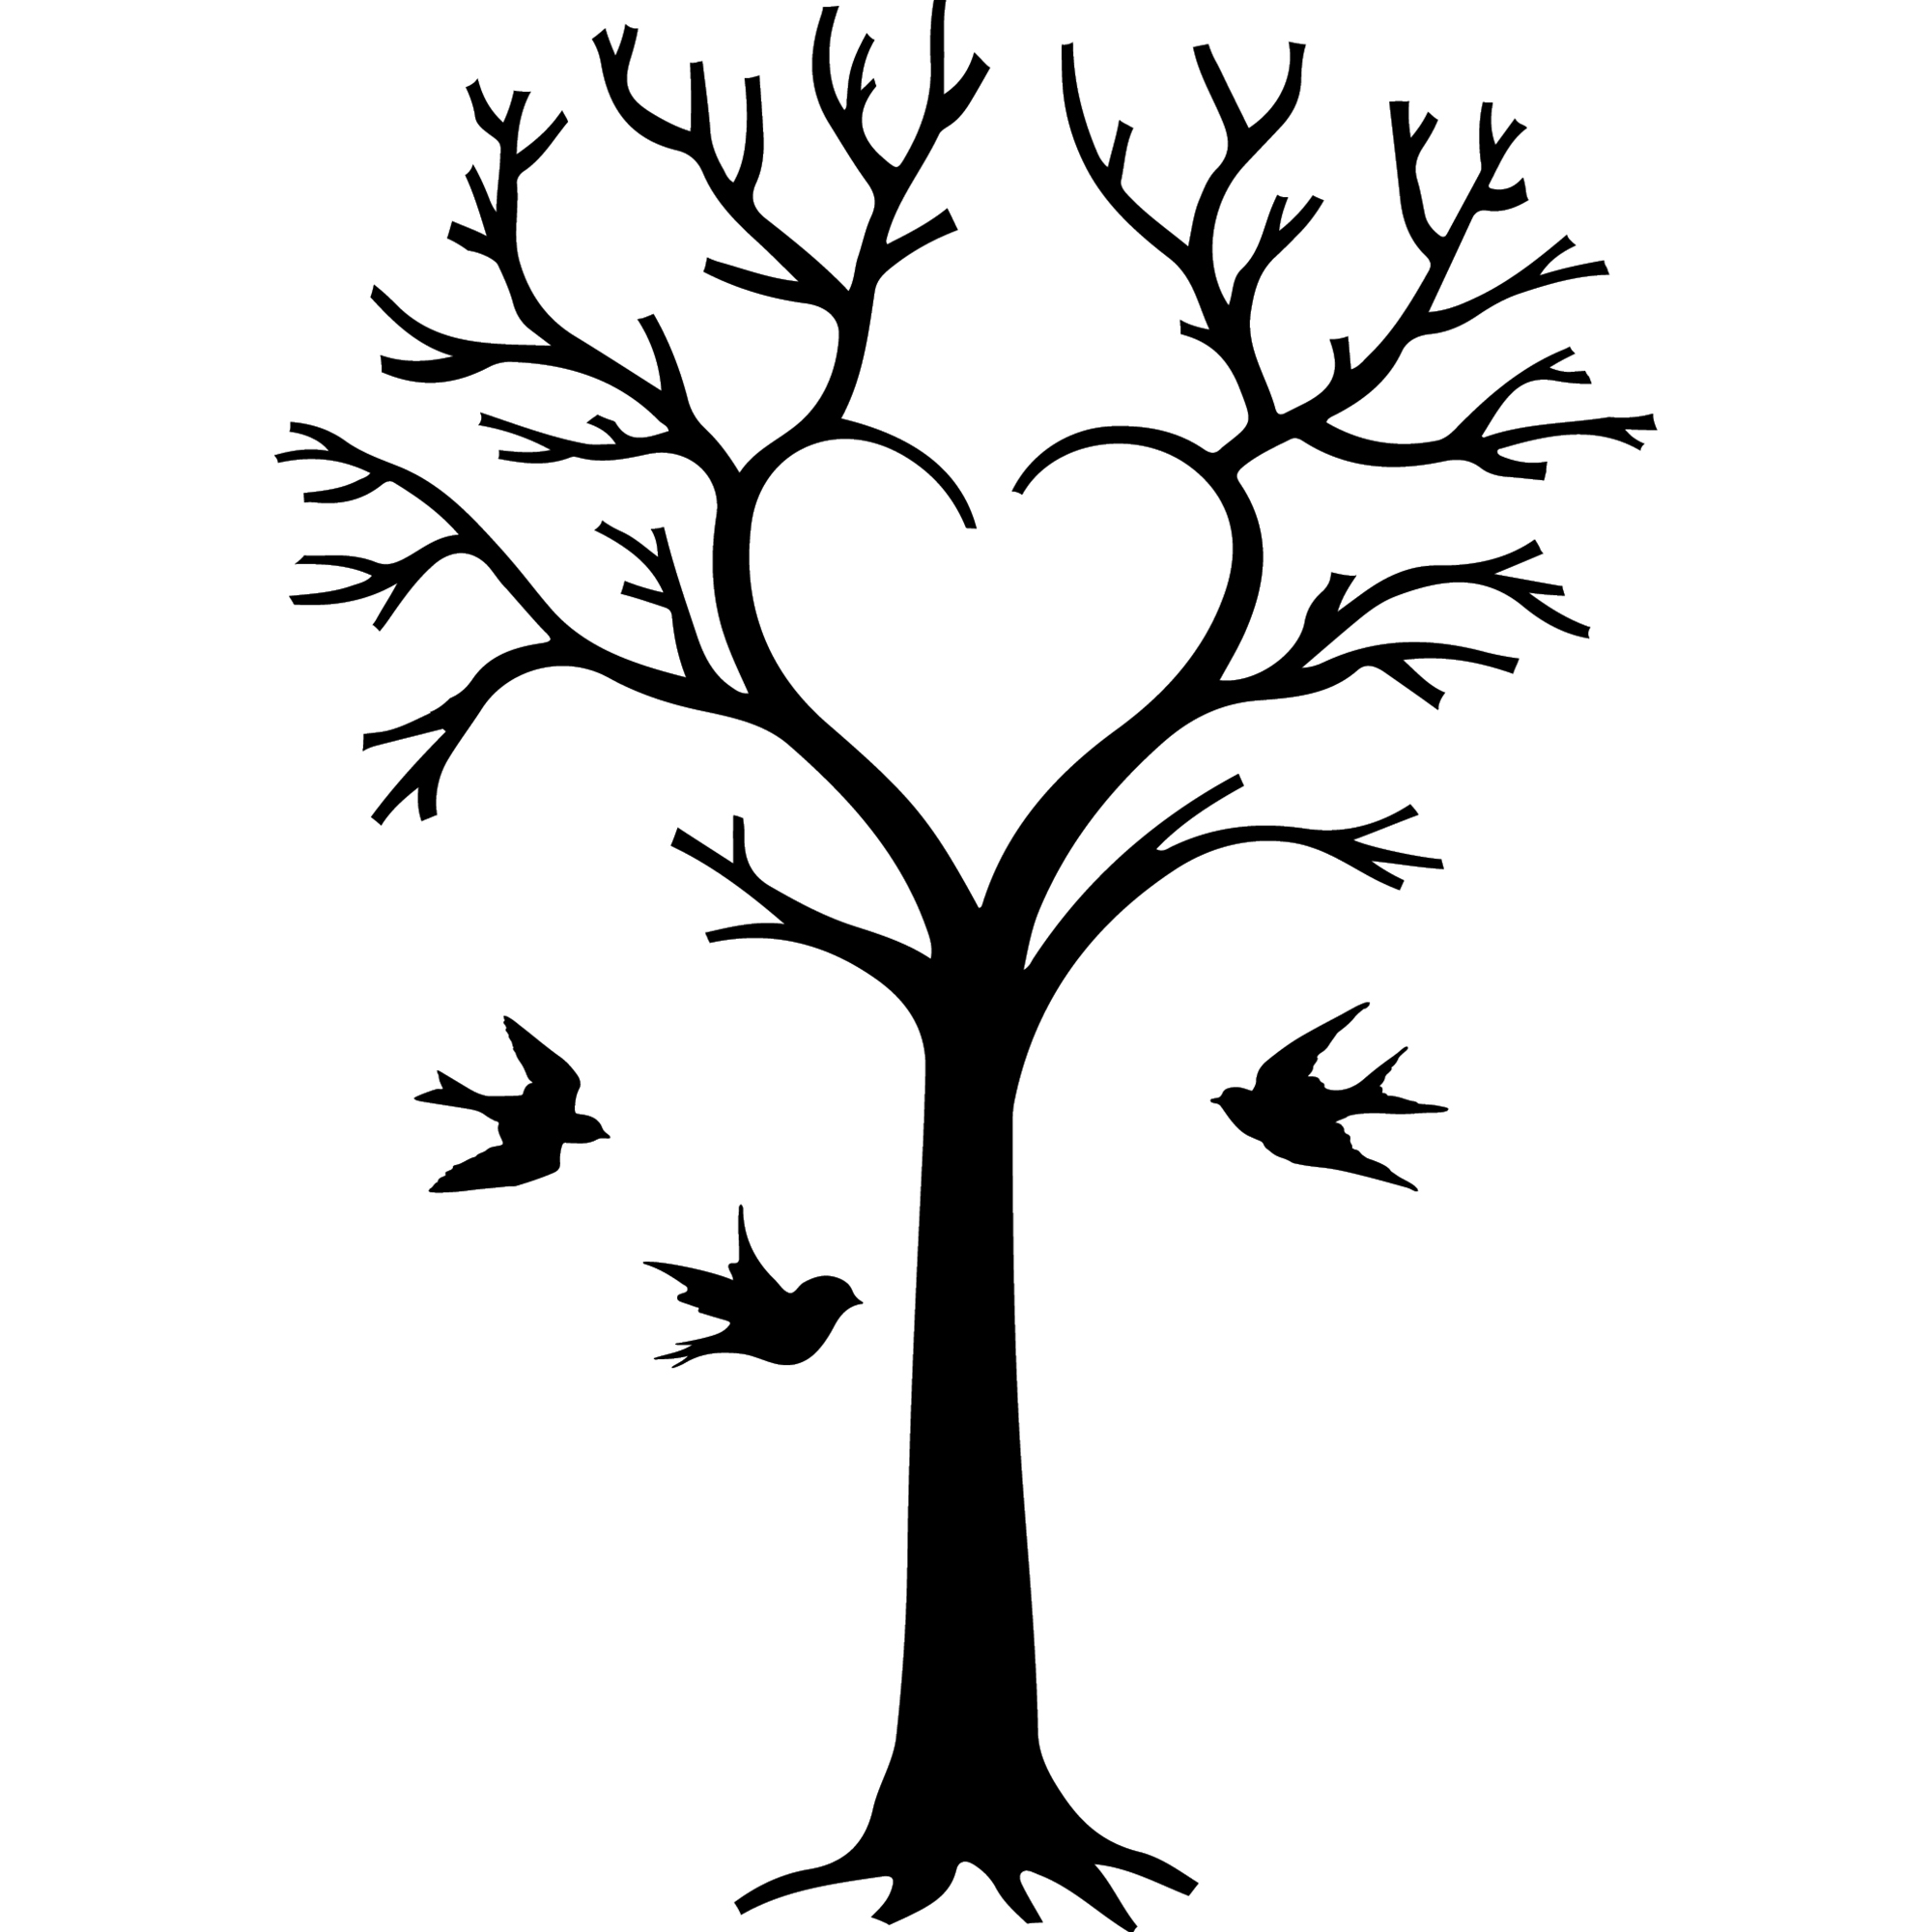 sticker oiseaux et arbre en coeur stickers nature arbres ambiance sticker. Black Bedroom Furniture Sets. Home Design Ideas